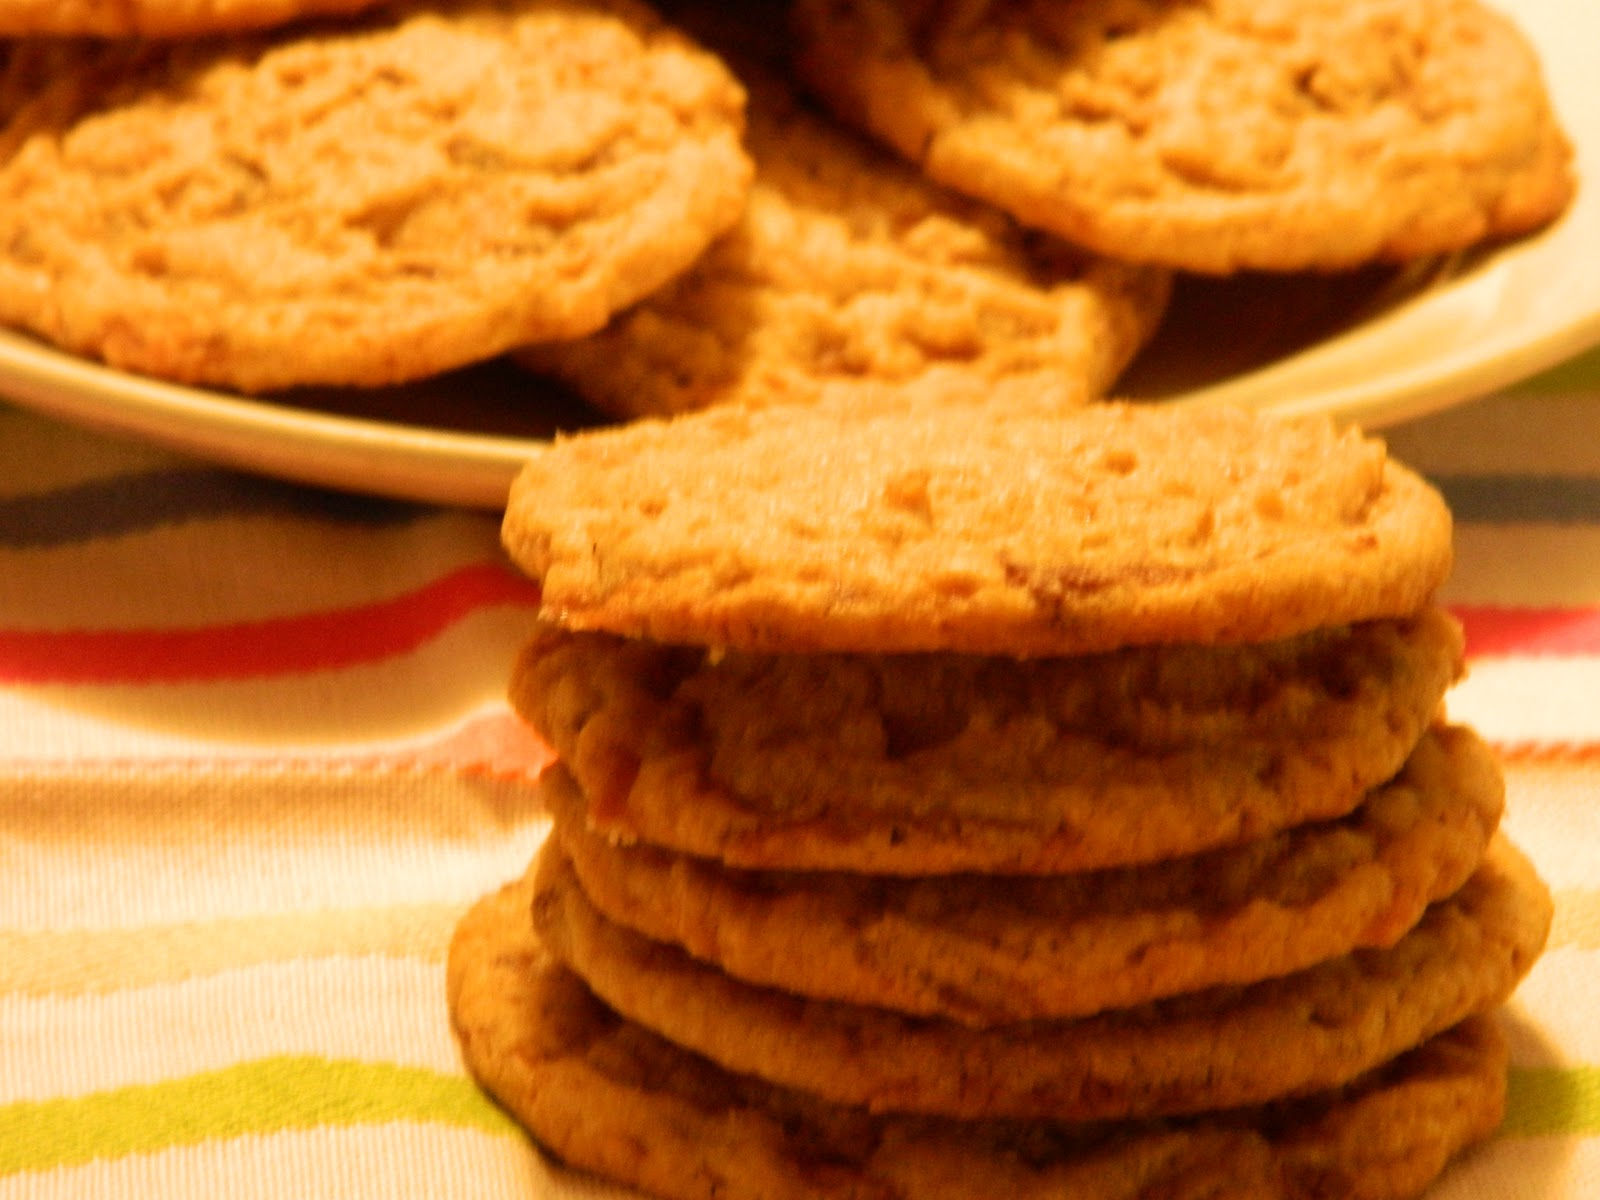 The Wednesday Baker: PEANUT BUTER AND CHOCOLATE CHUNK COOKIES